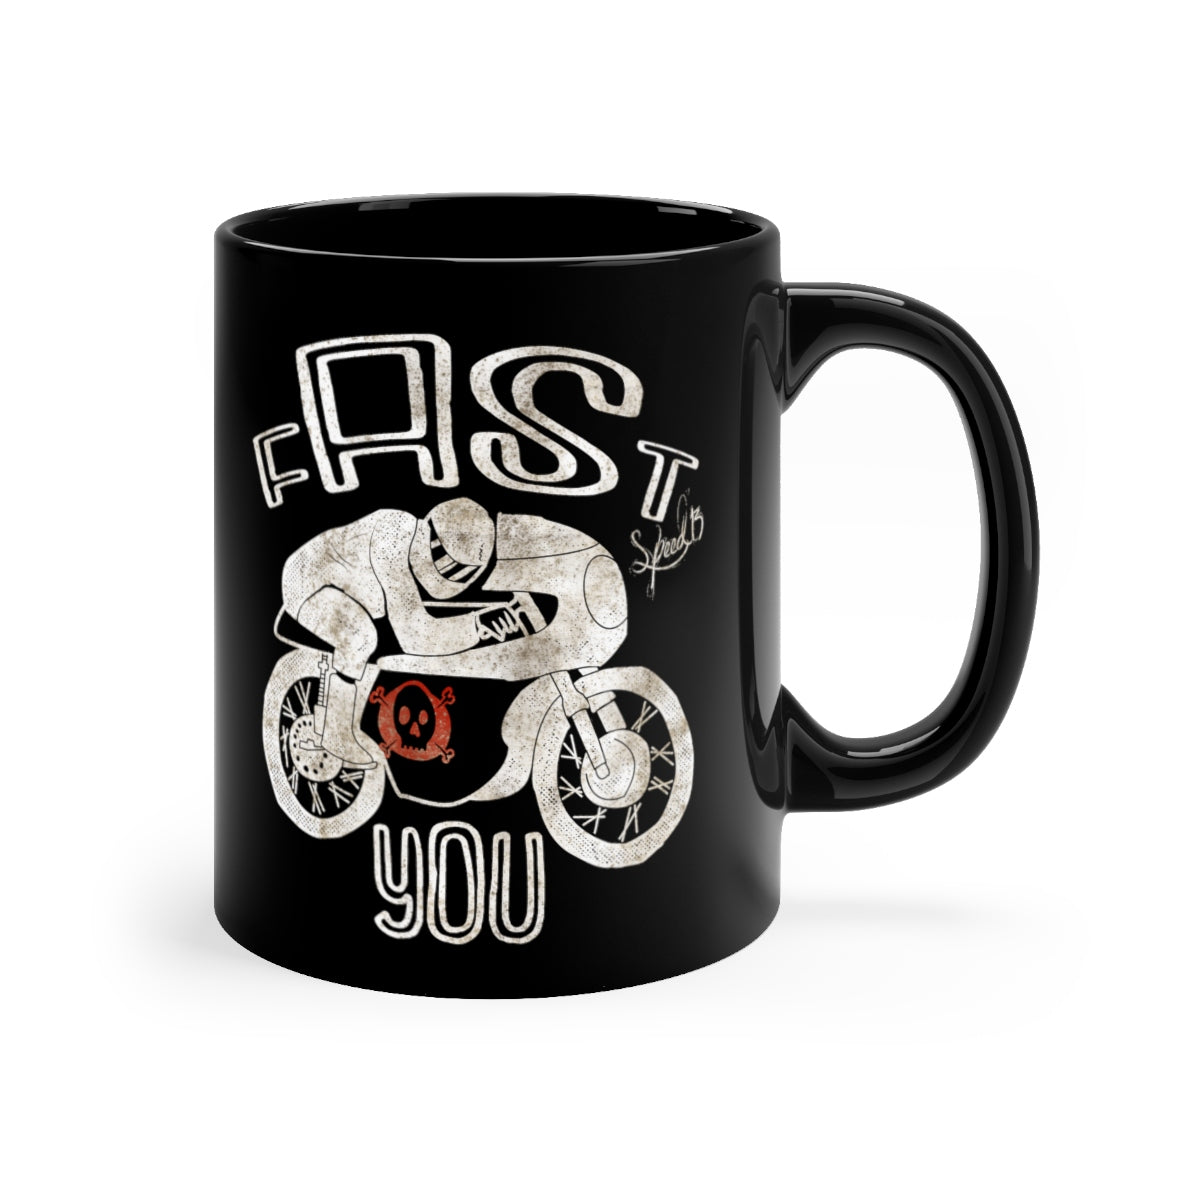 Fast AS you - Ver2 - Black mug 11oz